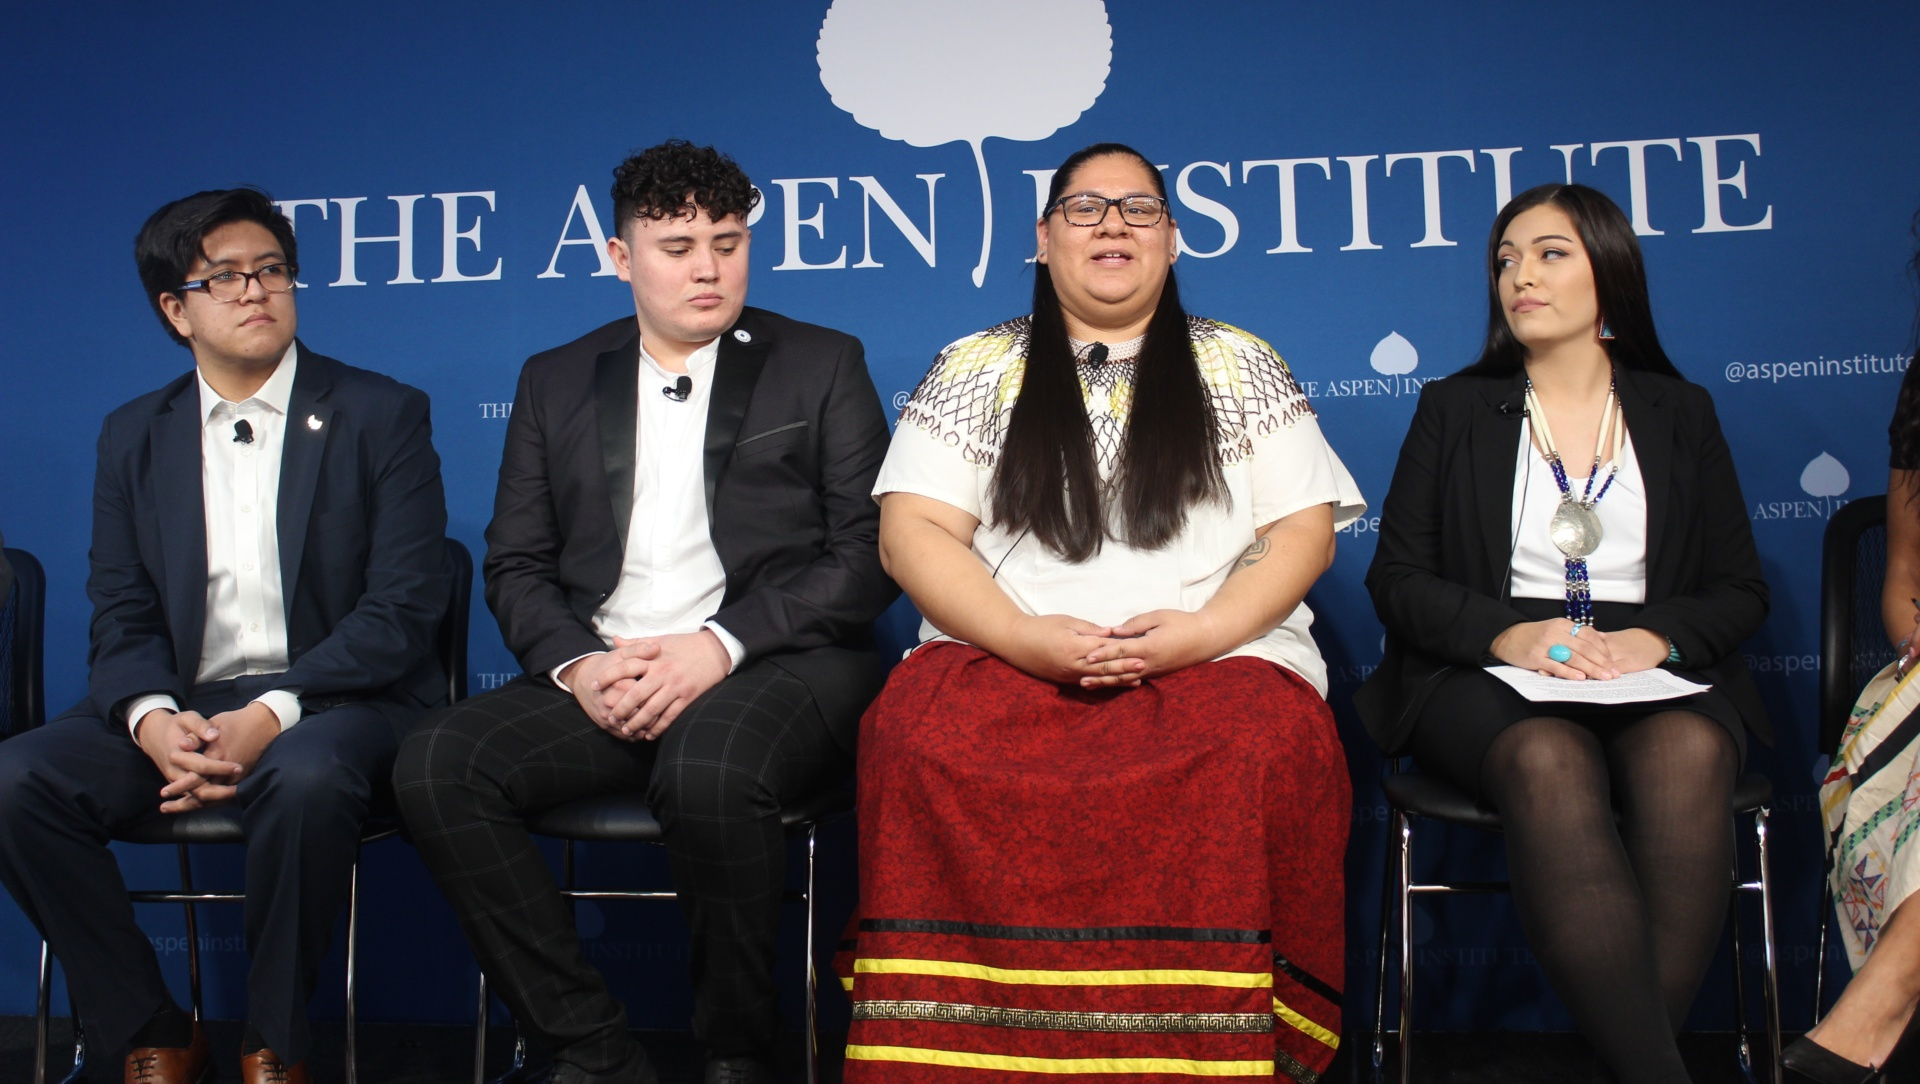 Native Youth leaders speaking at CNAY's event for the release of the 2019 State of Native Youth Report.